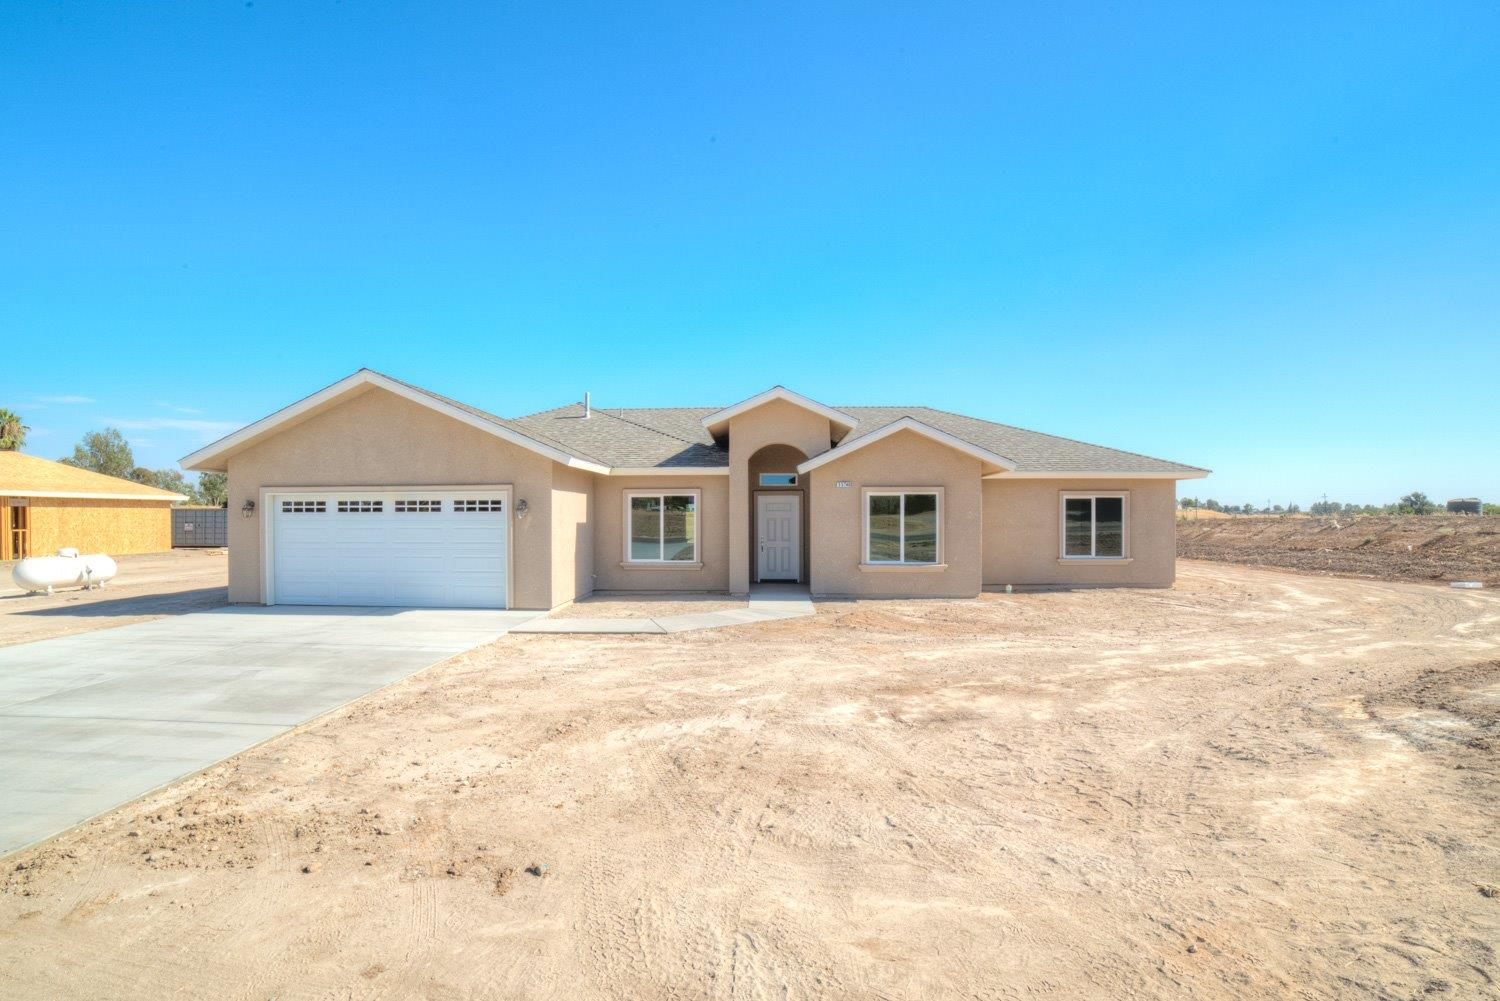 Photo of 109-Lot Franklin Avenue, Madera, CA 93636